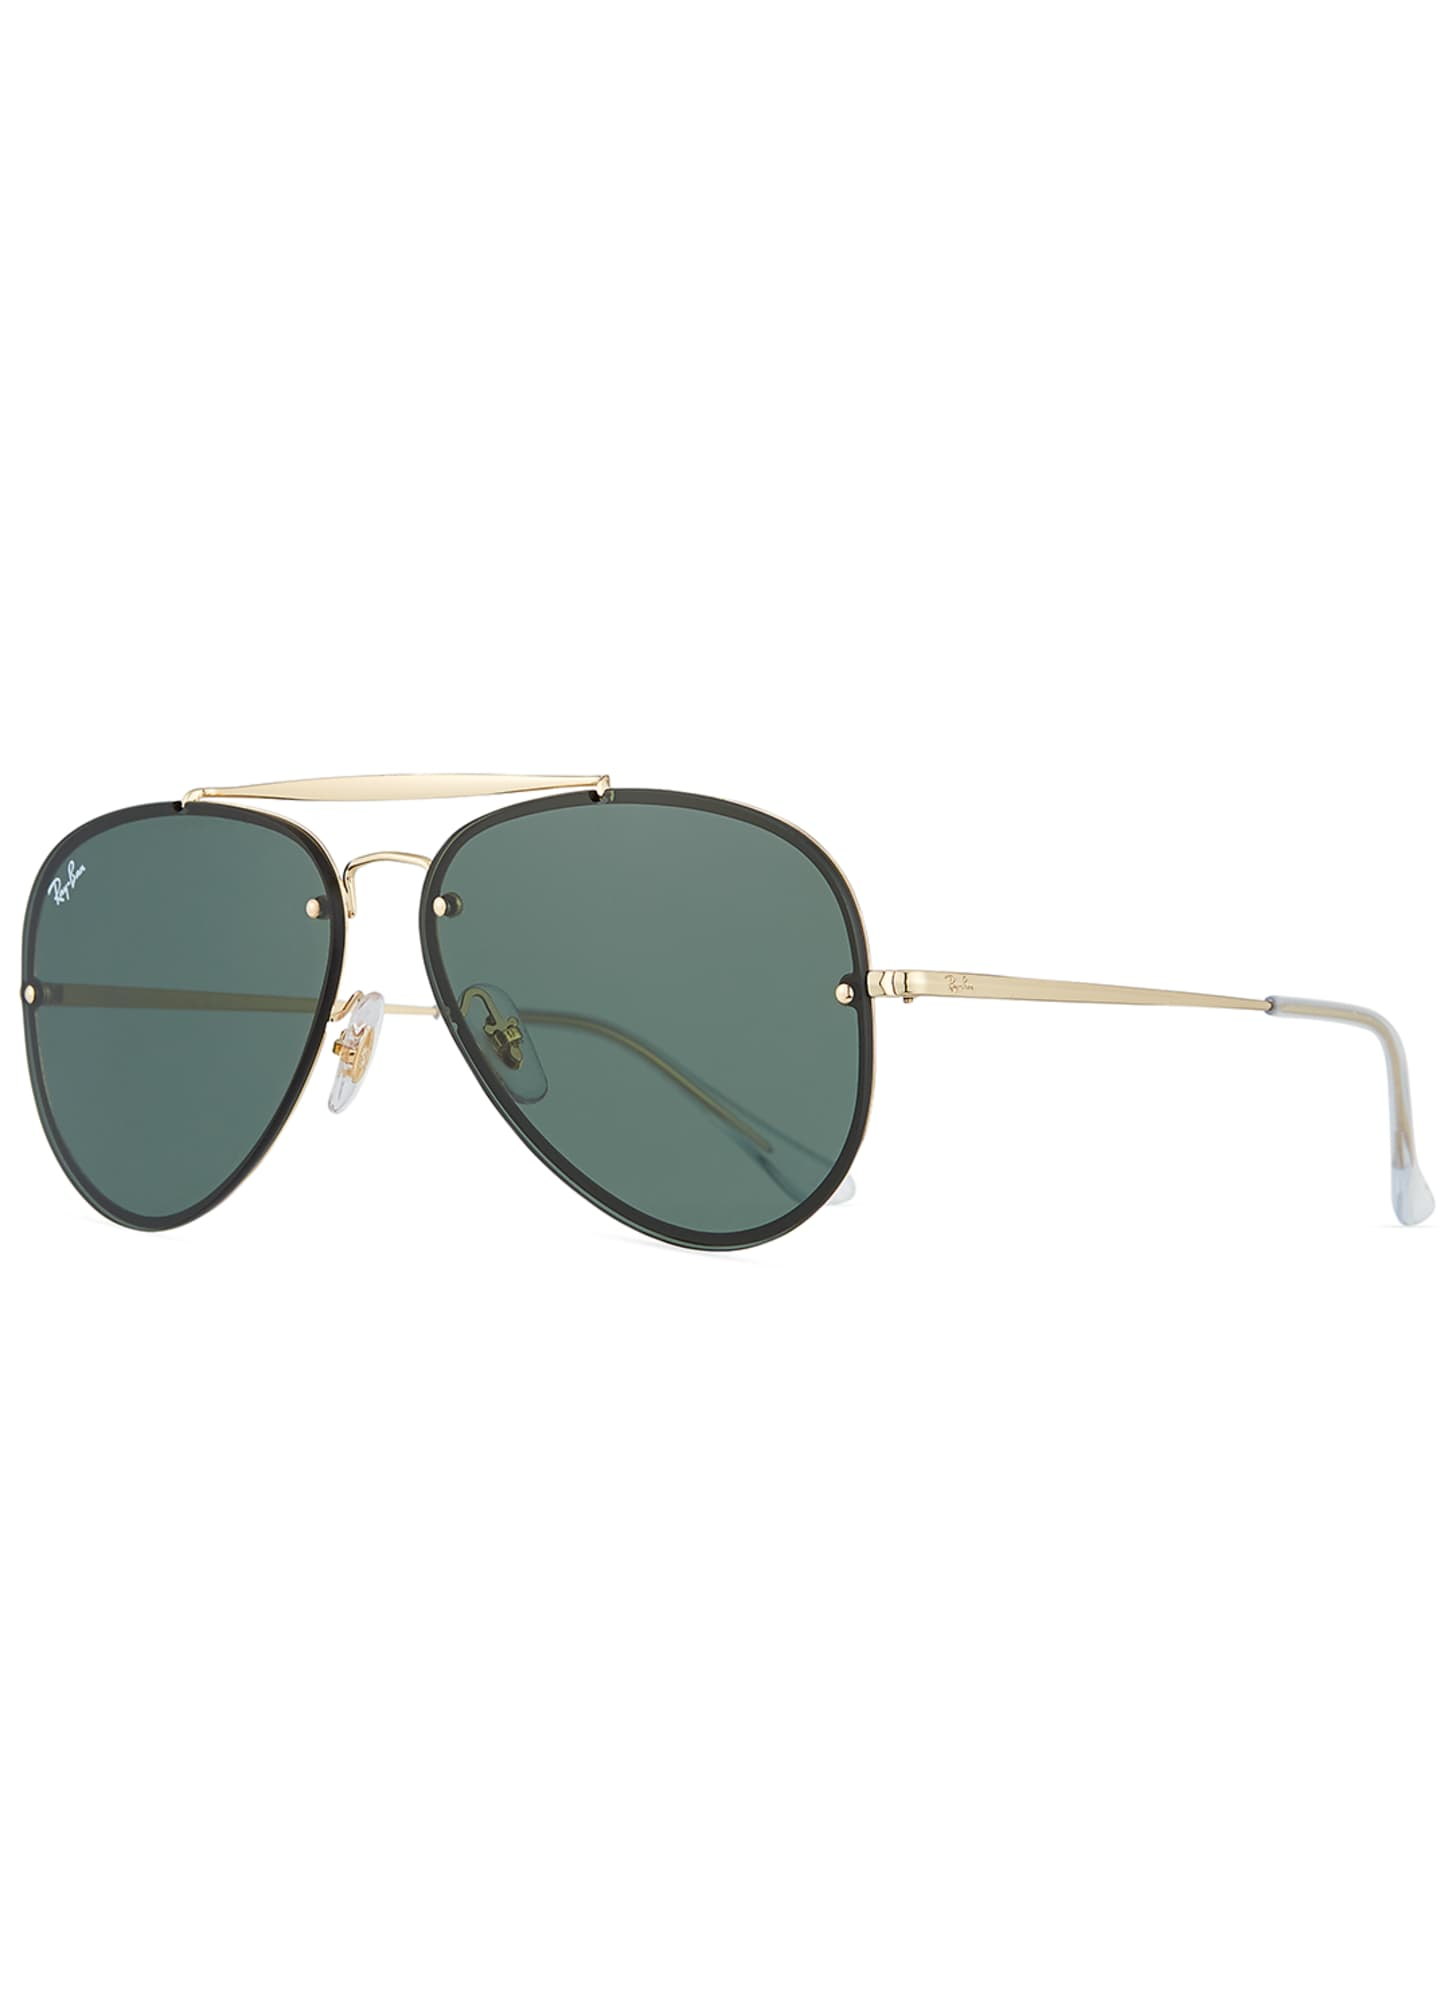 Image 1 of 3: Brow Bar Aviator Sunglasses